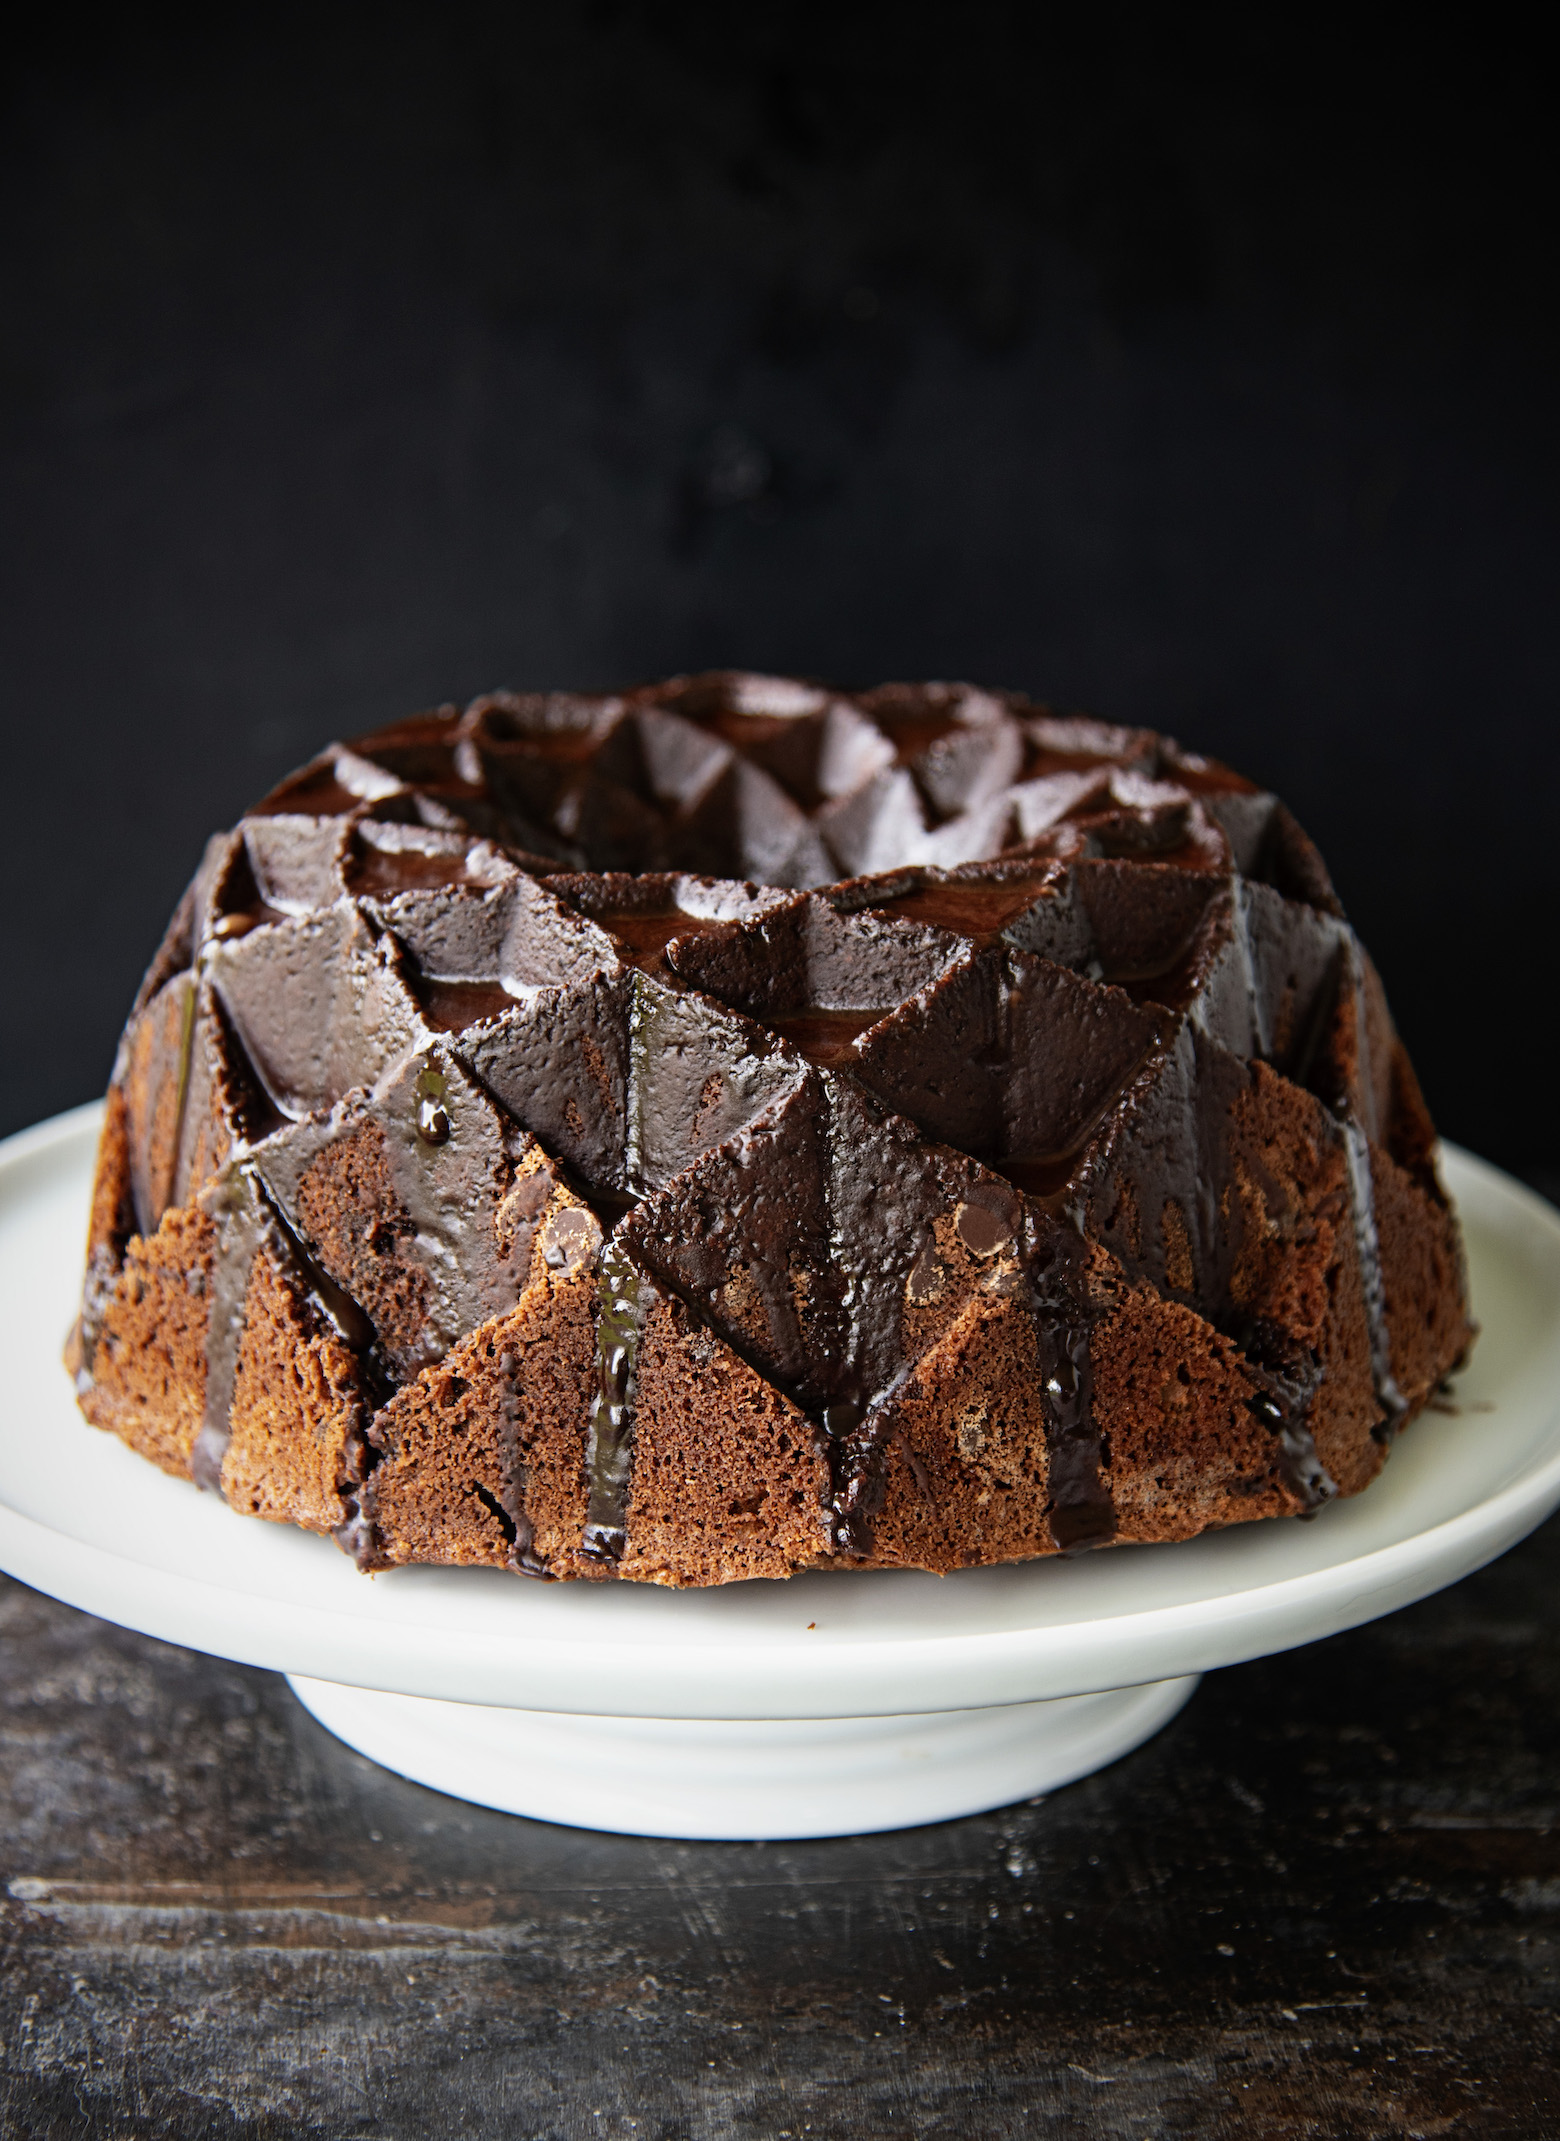 Bailey's Salted Caramel Chocolate Bundt Cake